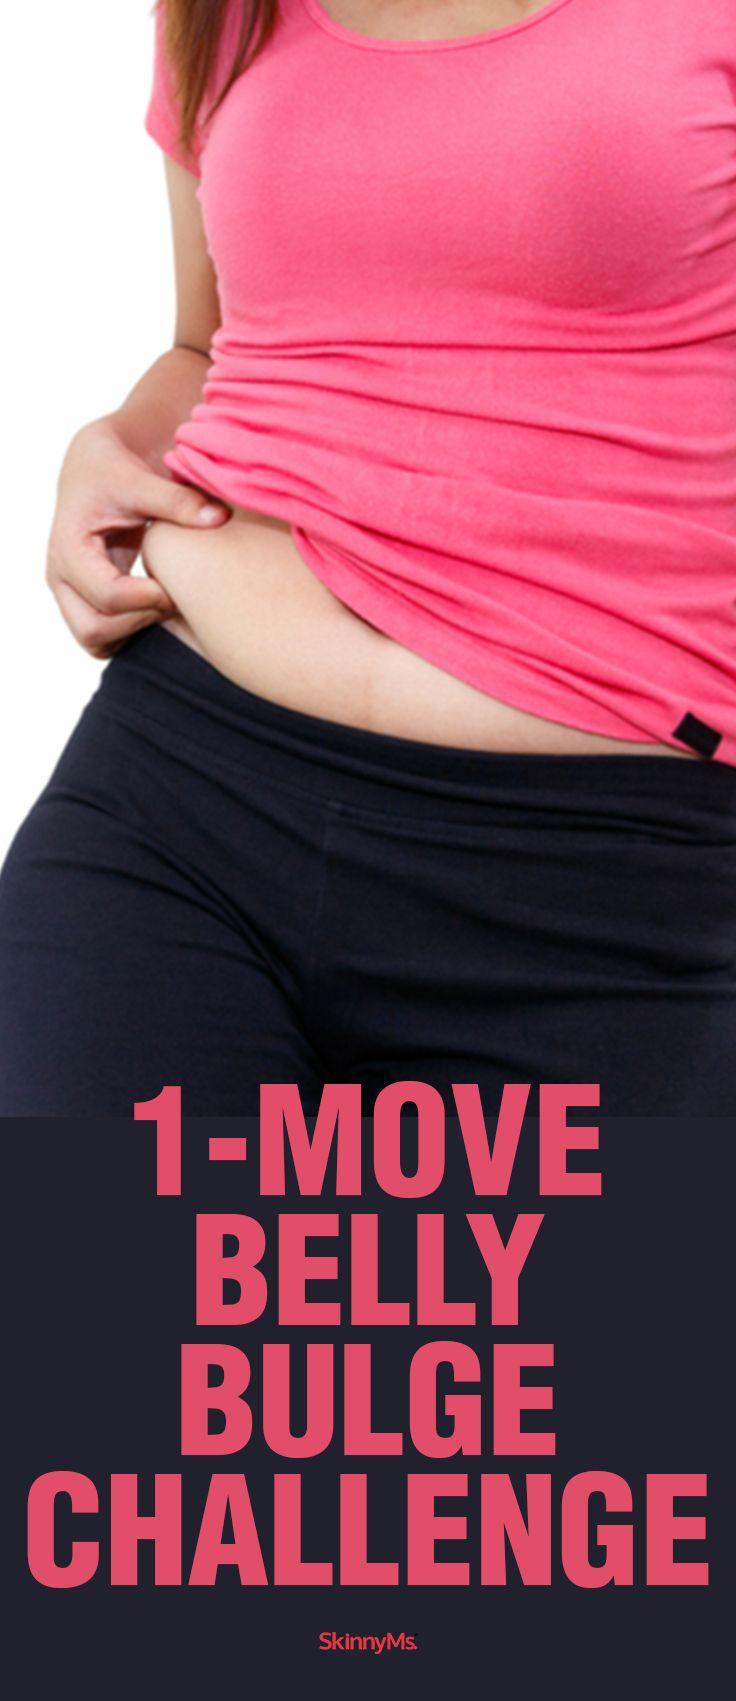 Our 1-Move Belly Bulge Challenge can help you cinch your middle and define your waist!